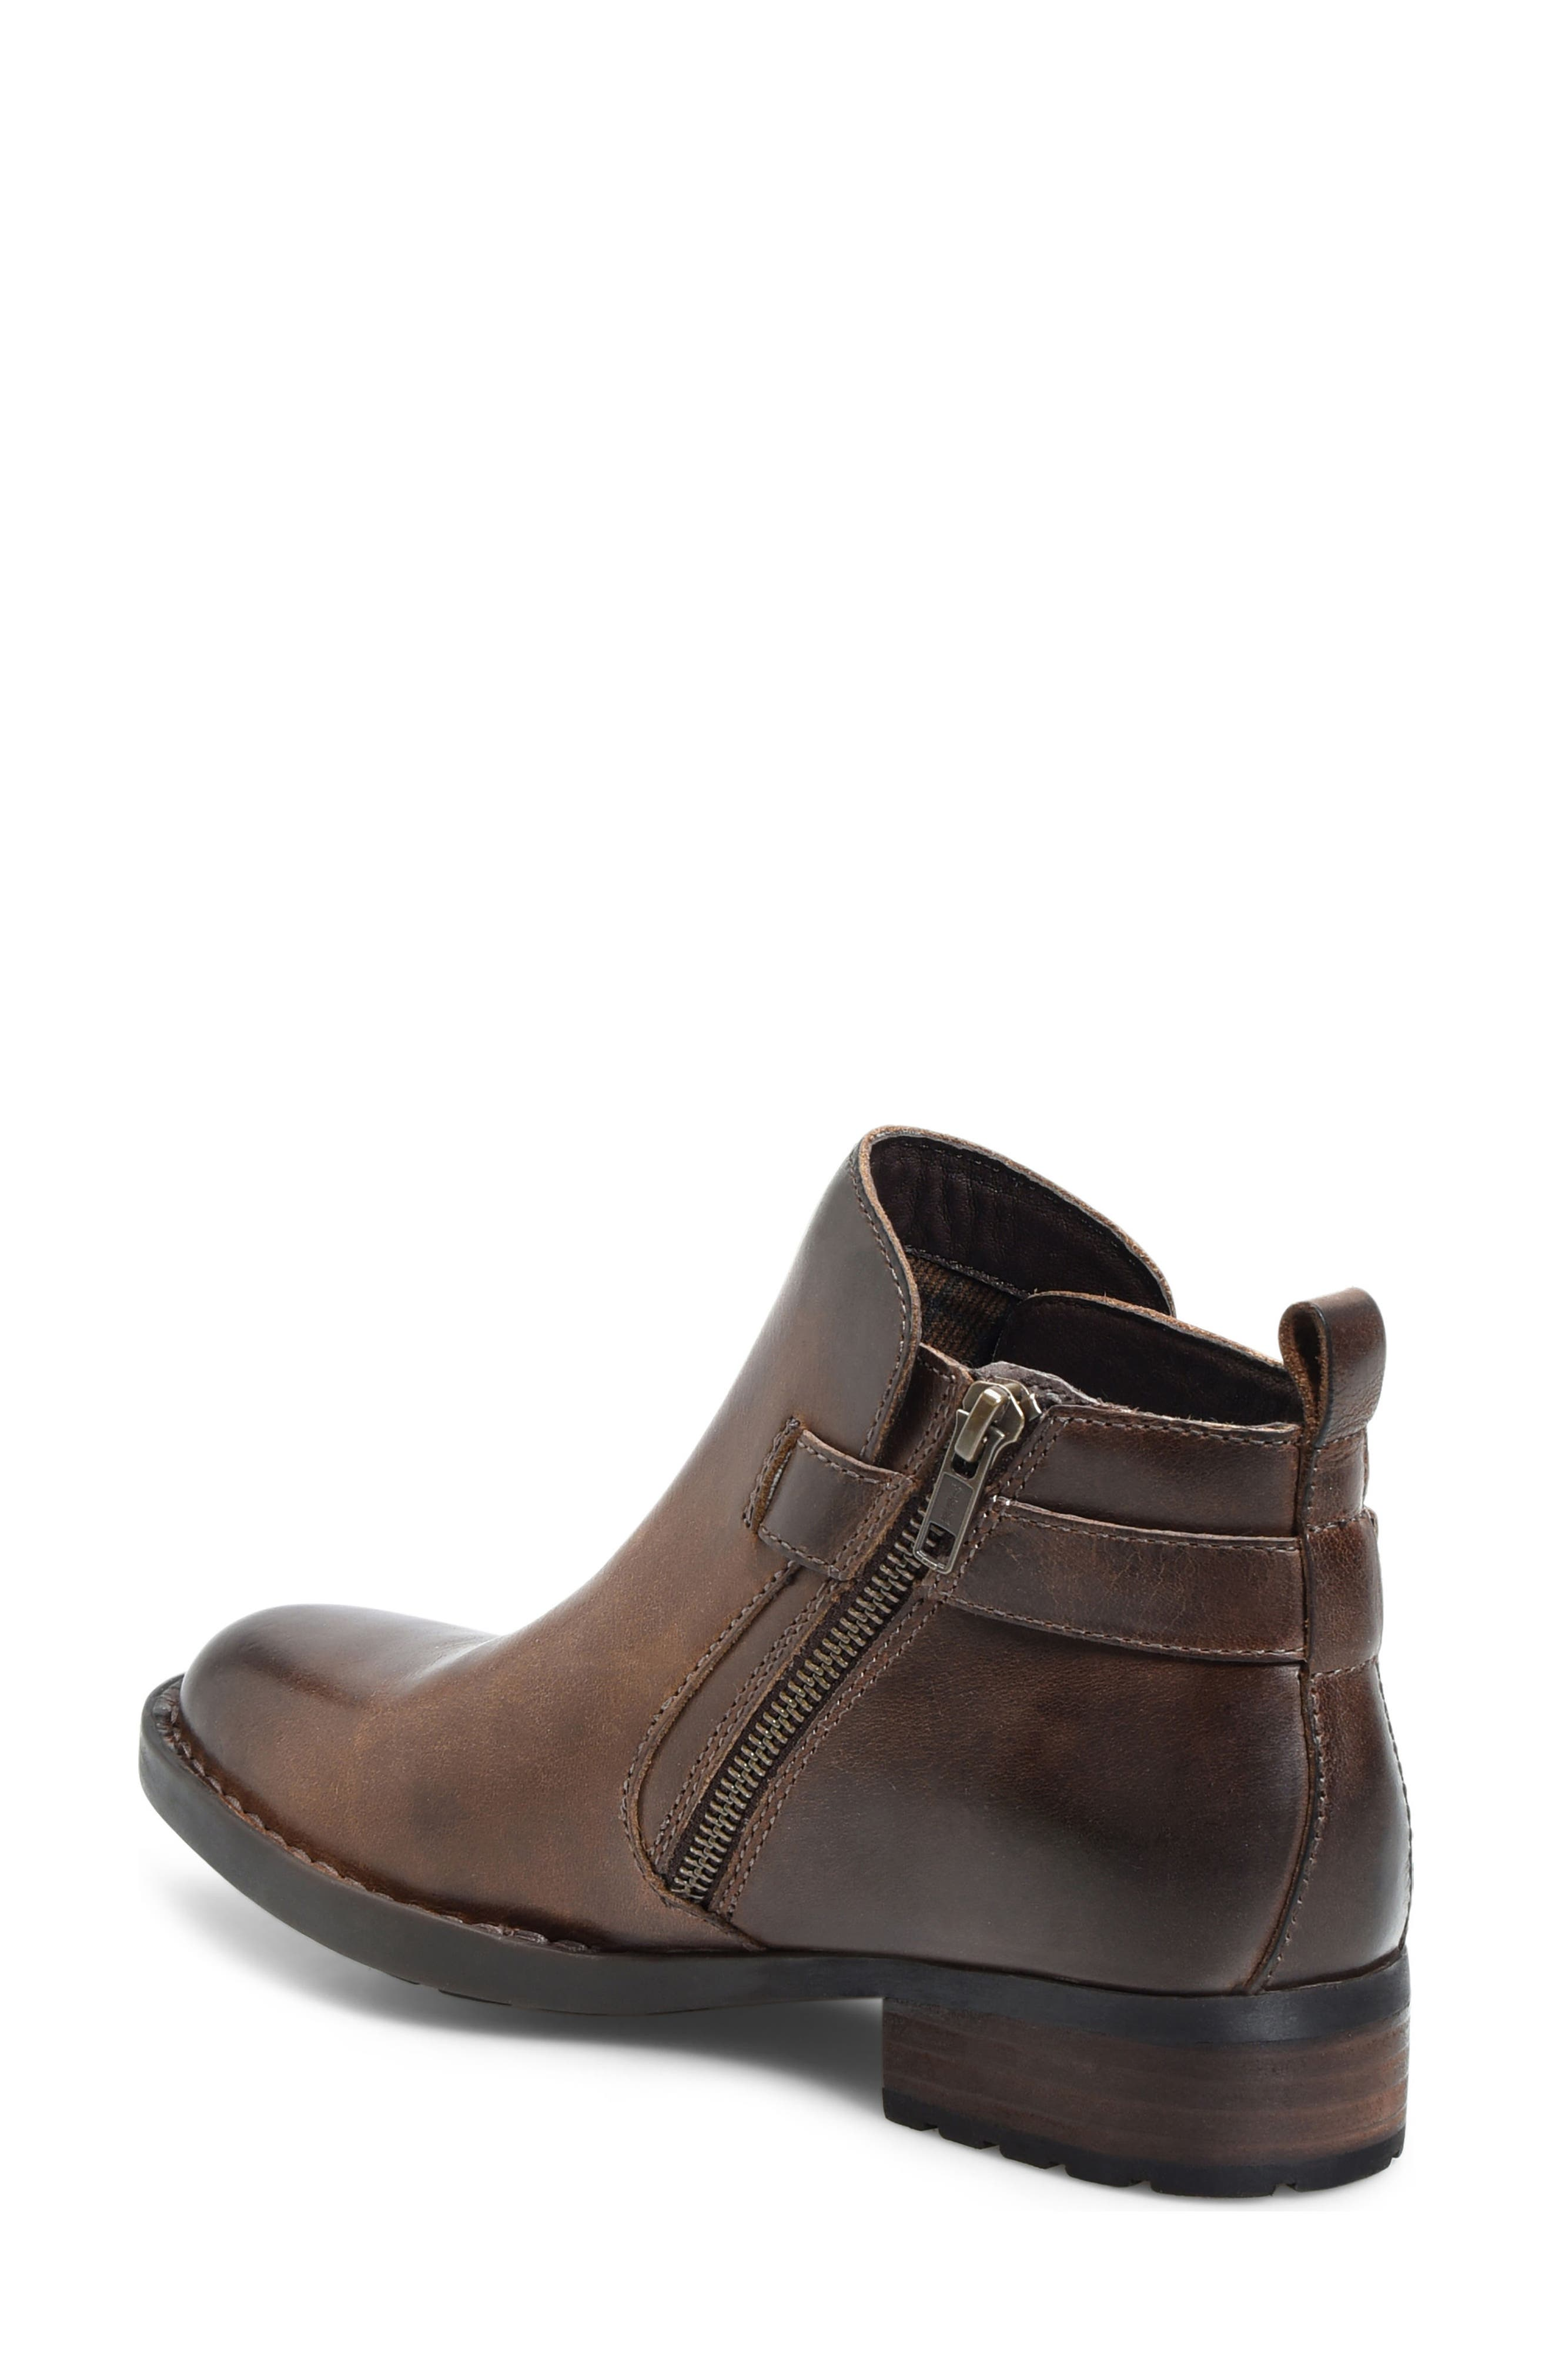 Timms Bootie,                             Alternate thumbnail 2, color,                             Brown Leather